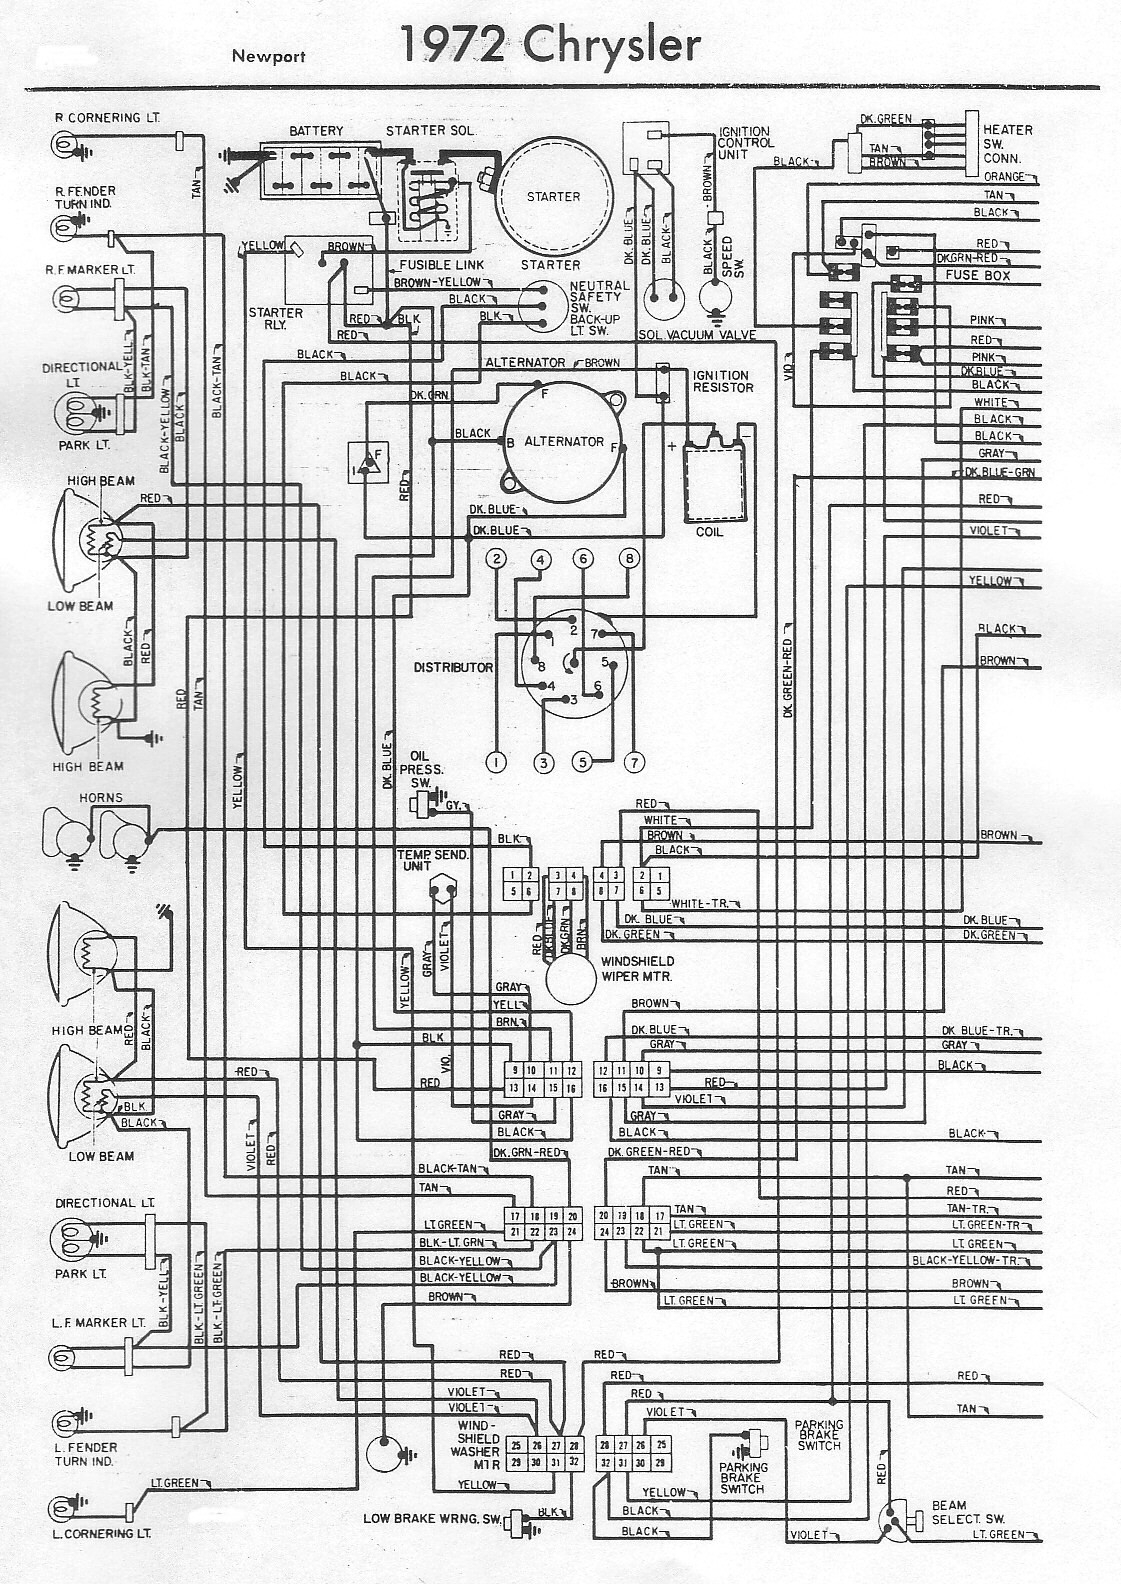 1966 Chrysler Newport Wiring Diagram Diagrams Pontiac 1972 Electrical All 1965 Jeep Cj5